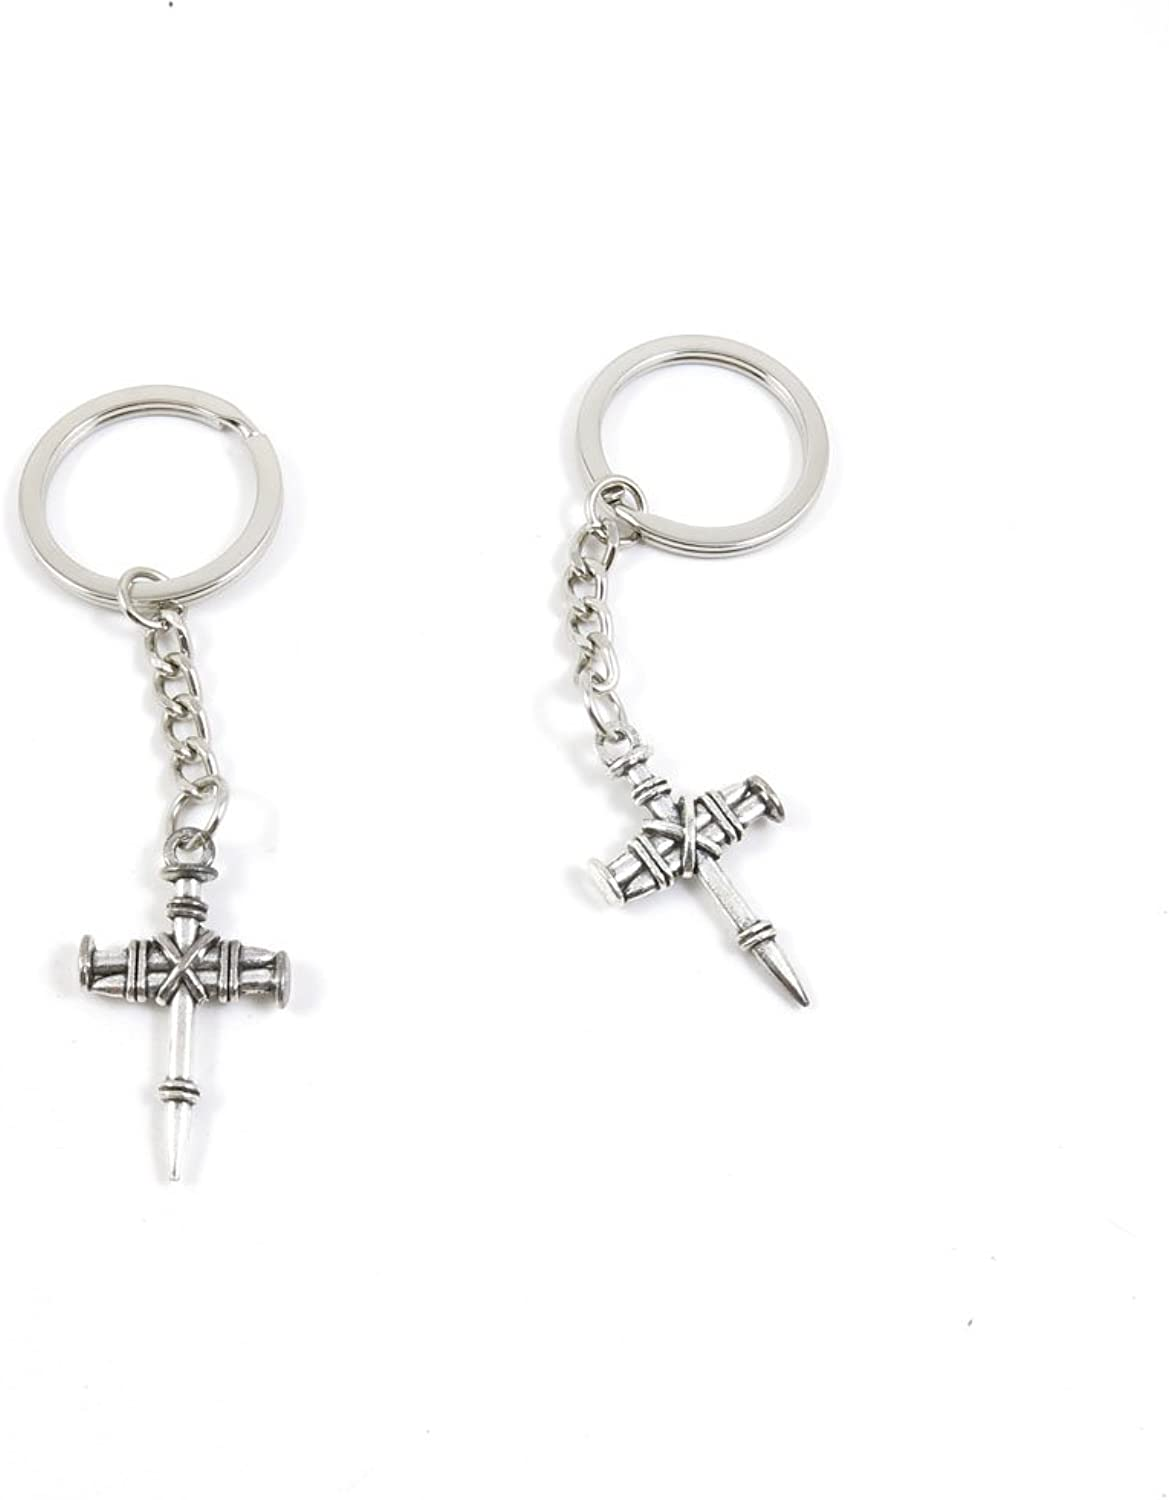 100 Pieces Keychain Keyring Door Car Key Chain Ring Tag Charms Bulk Supply Jewelry Making Clasp Findings W0JF5G Latin Cross